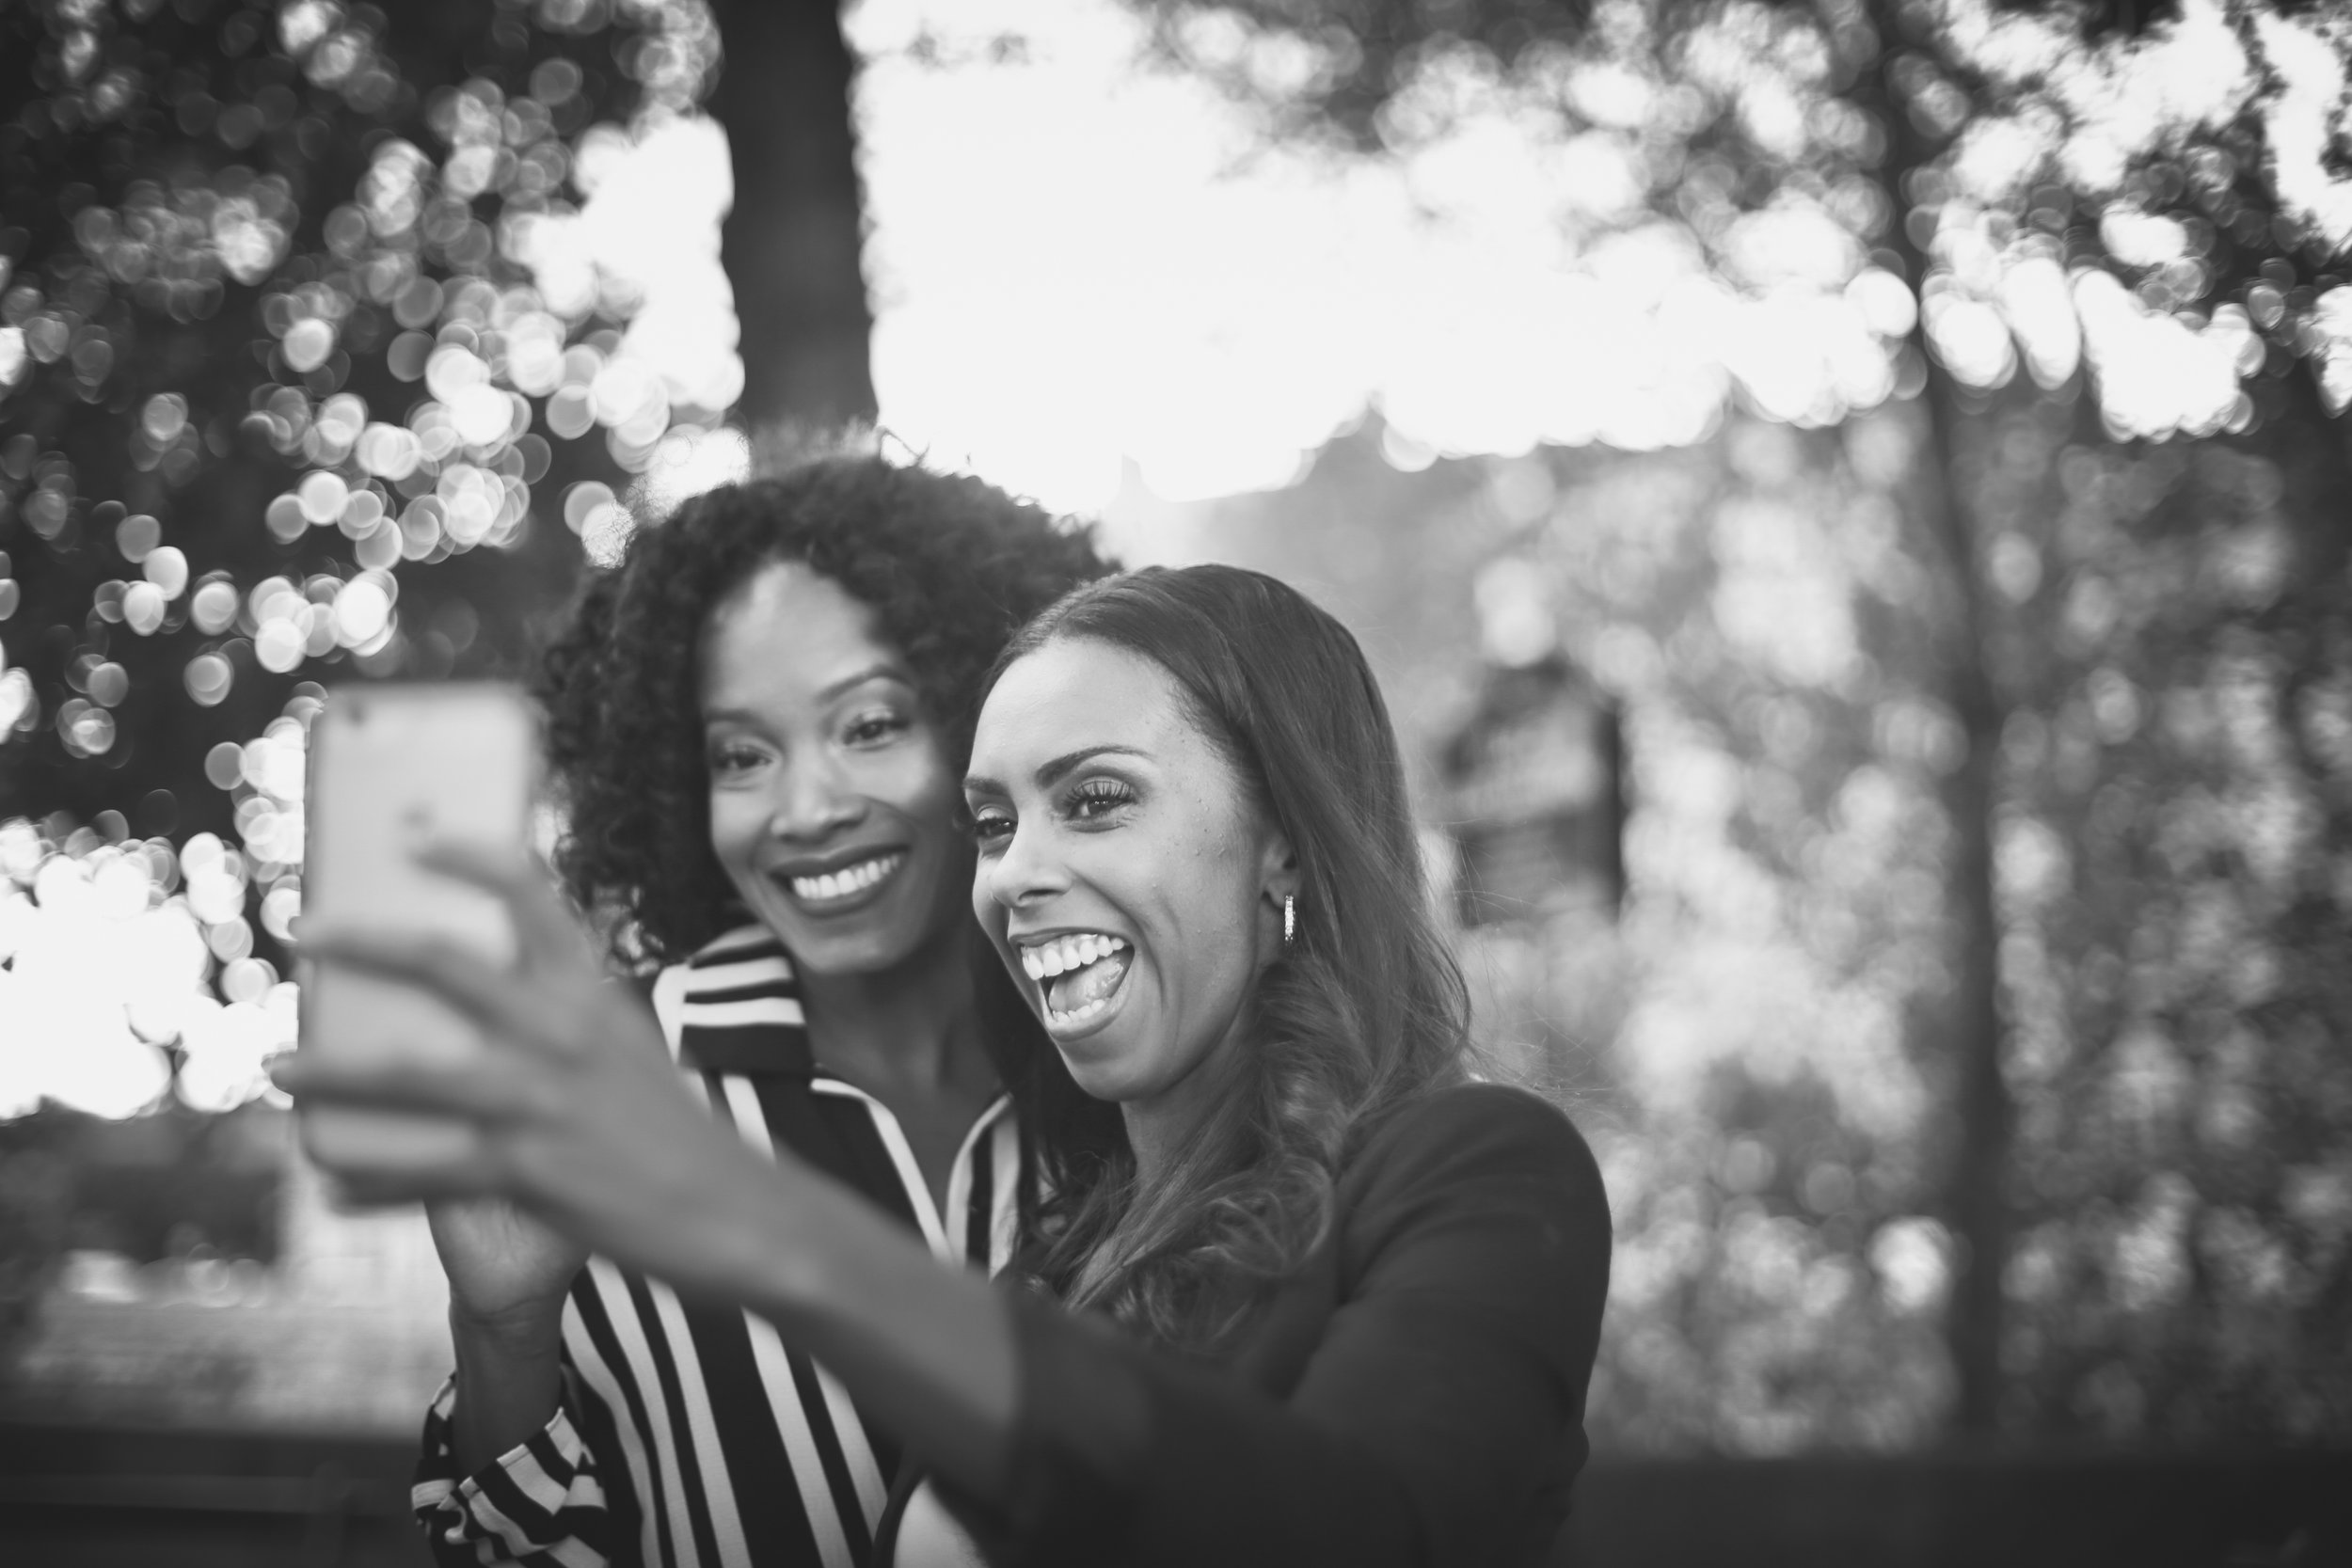 Flytographer. Paris vacation photo shoot. black and white photo. two friends taking a selfie.